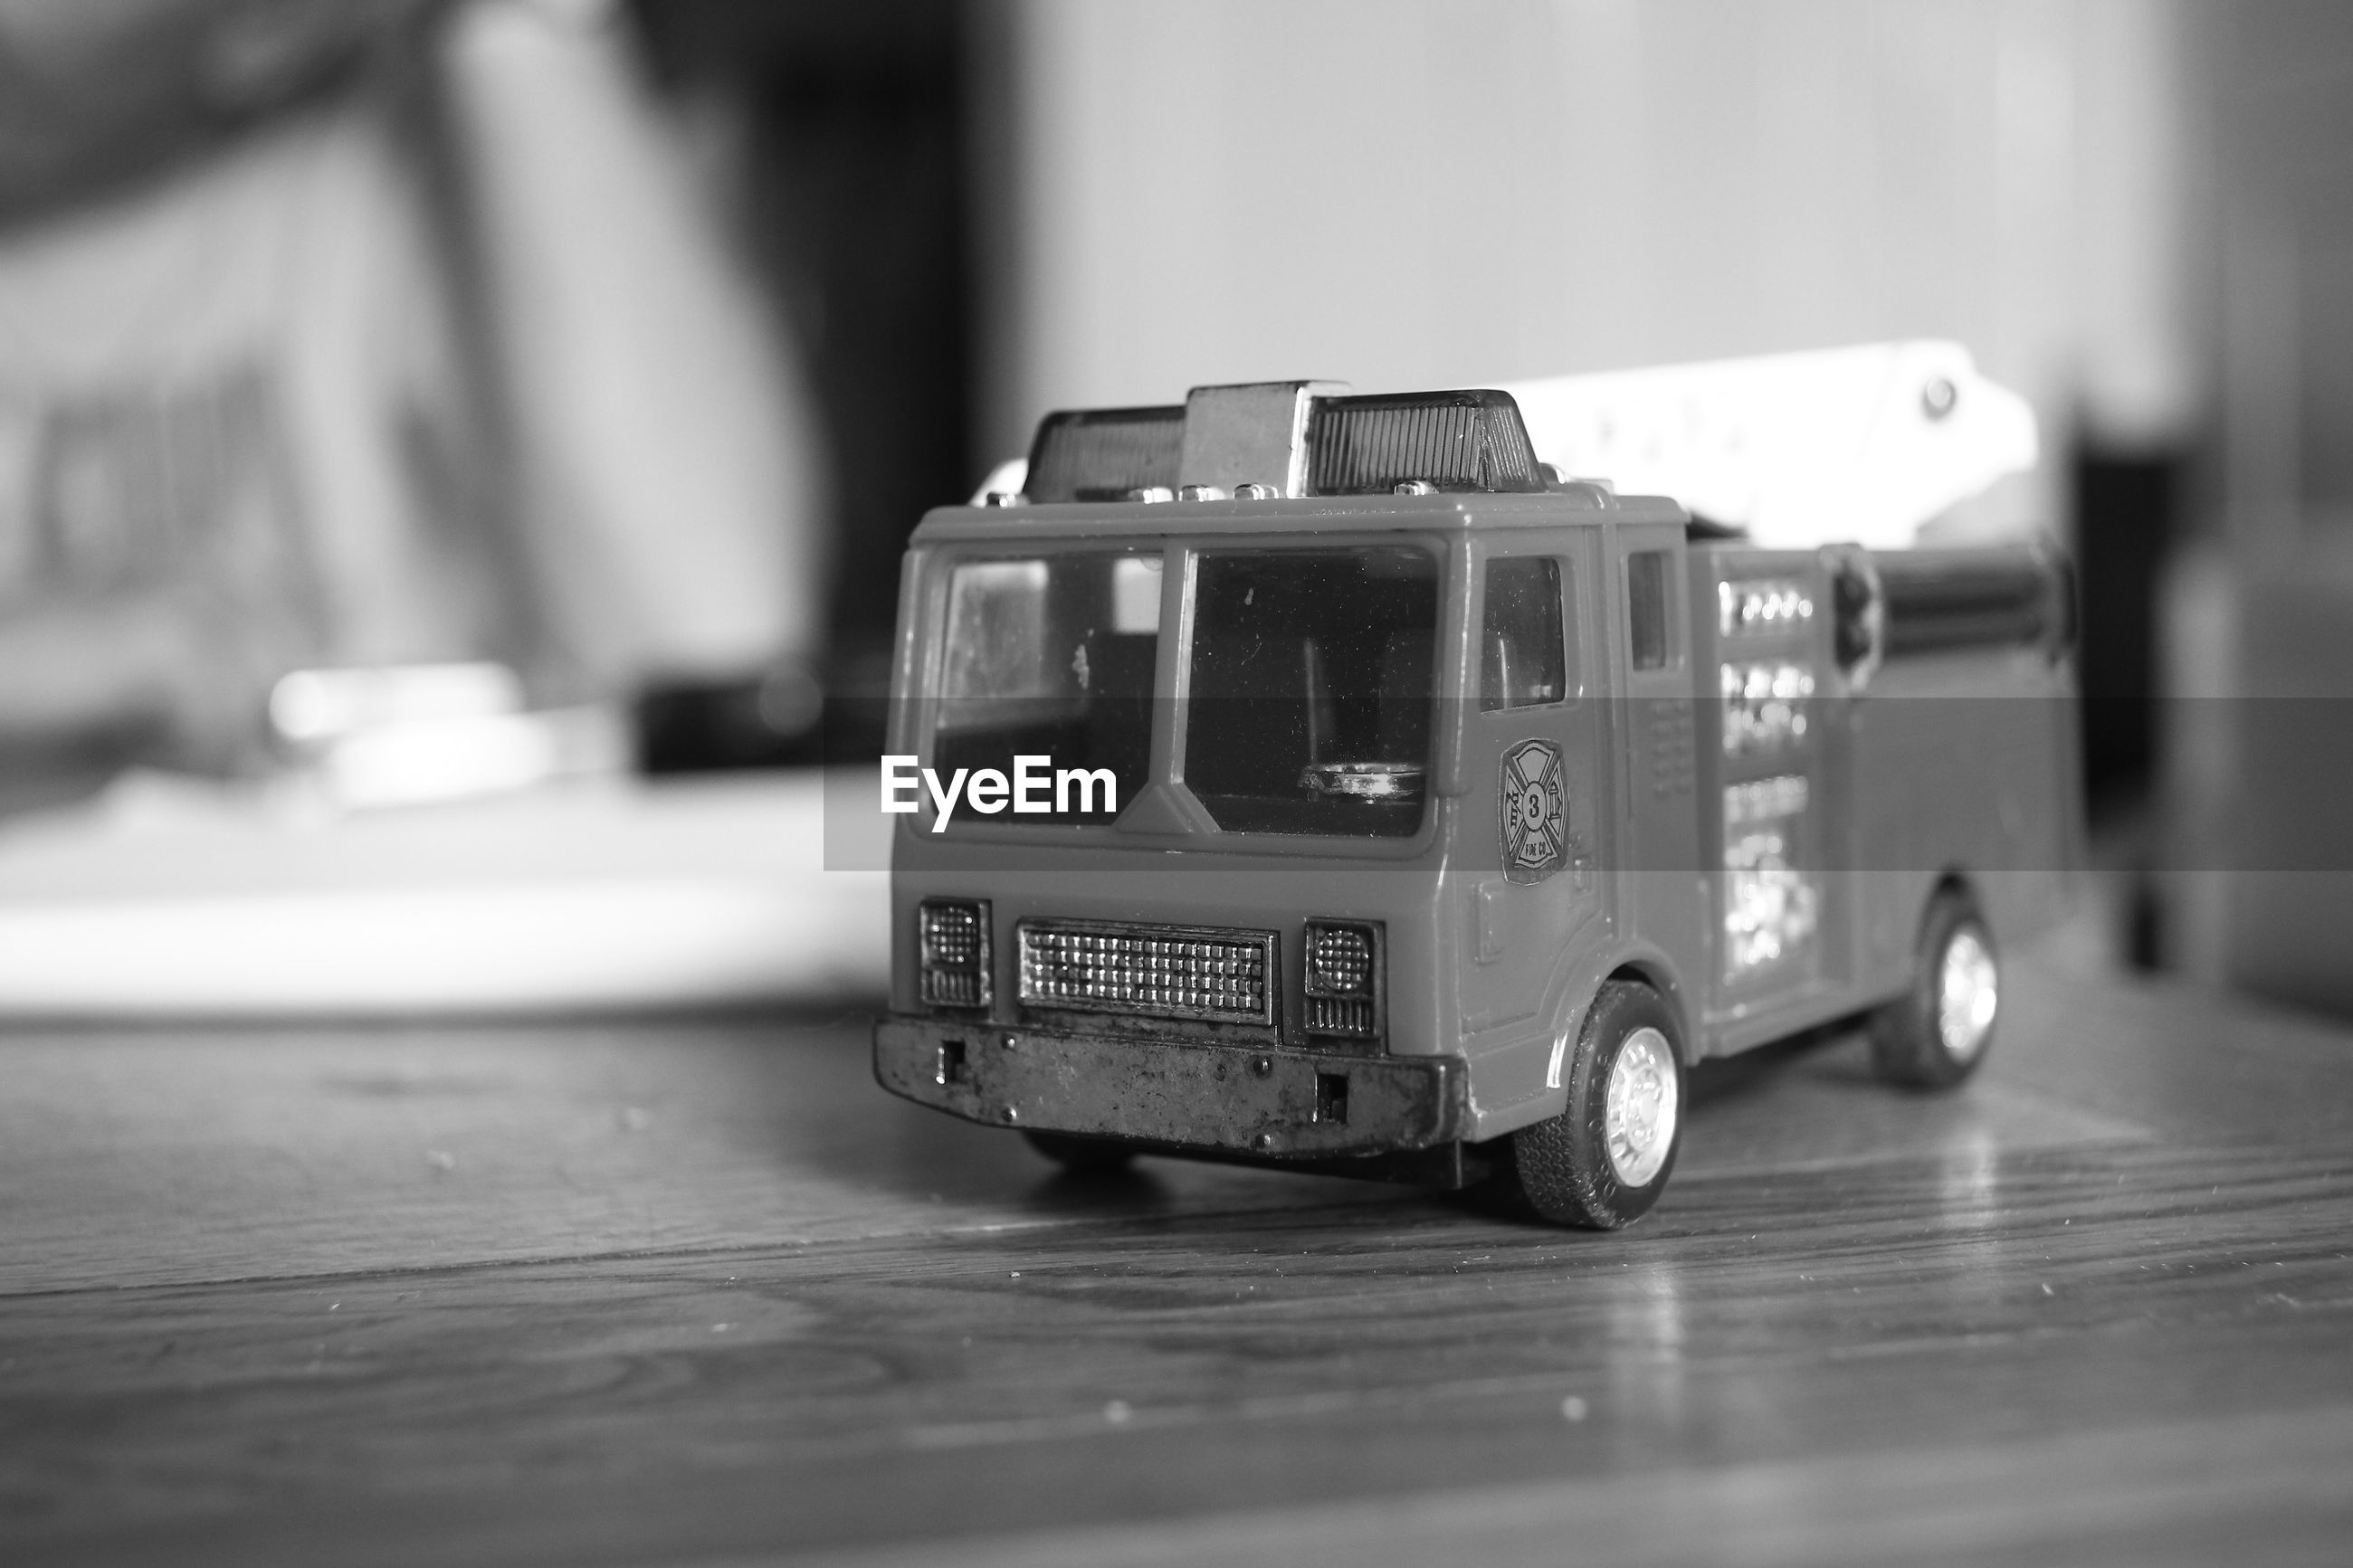 Close-up of toy fire engine on table